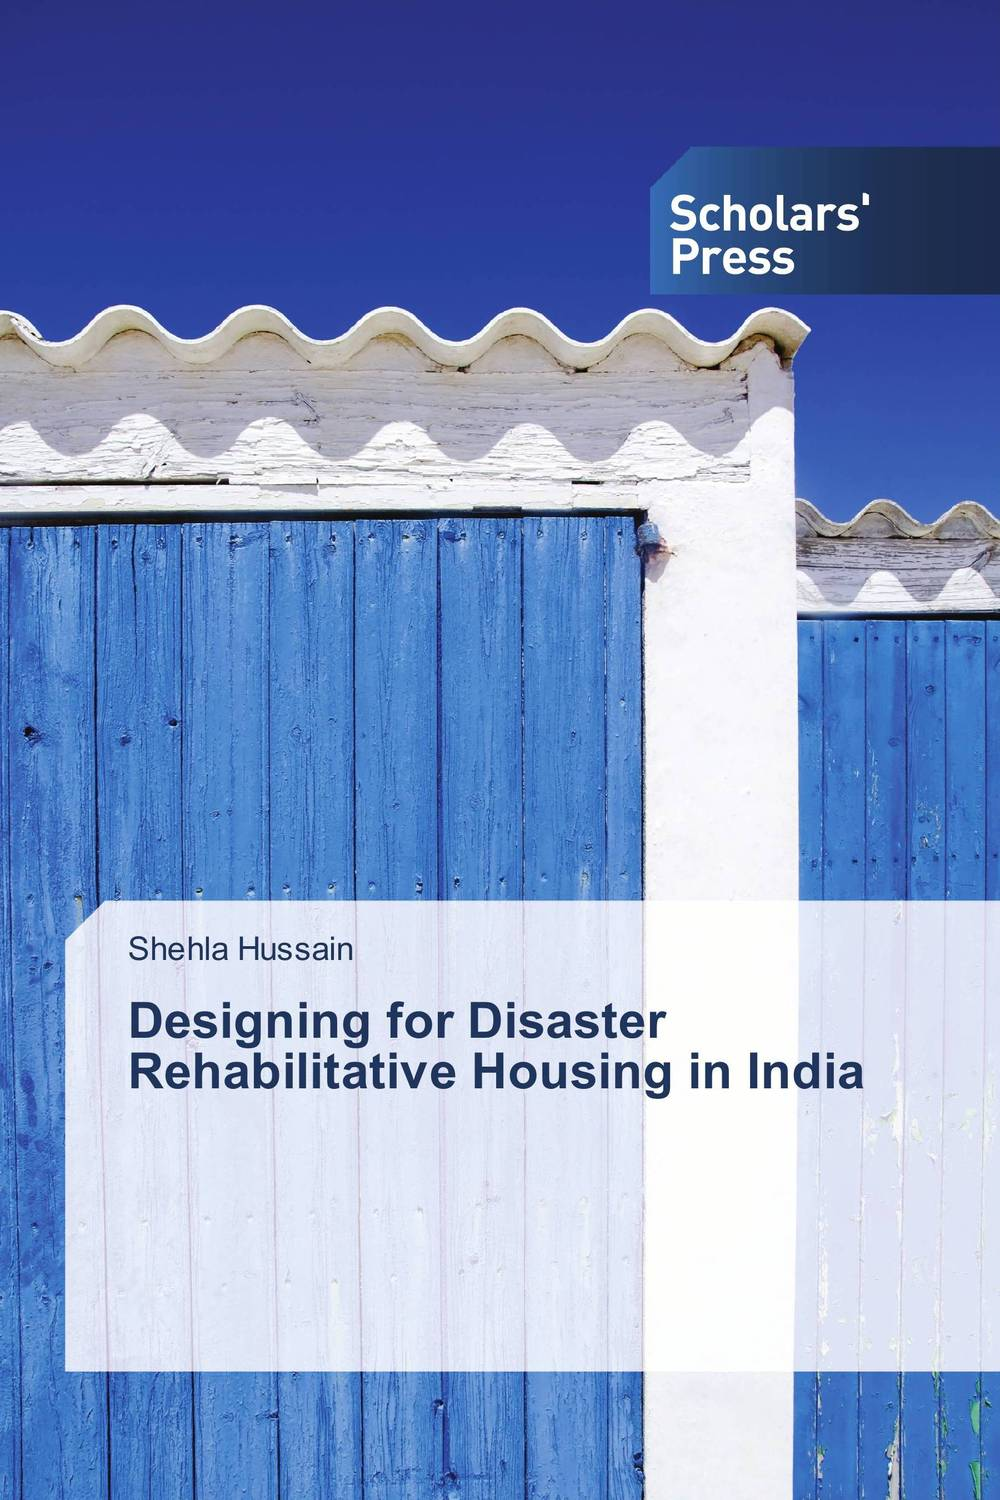 Designing for Disaster Rehabilitative Housing in India ballis stacey recipe for disaster